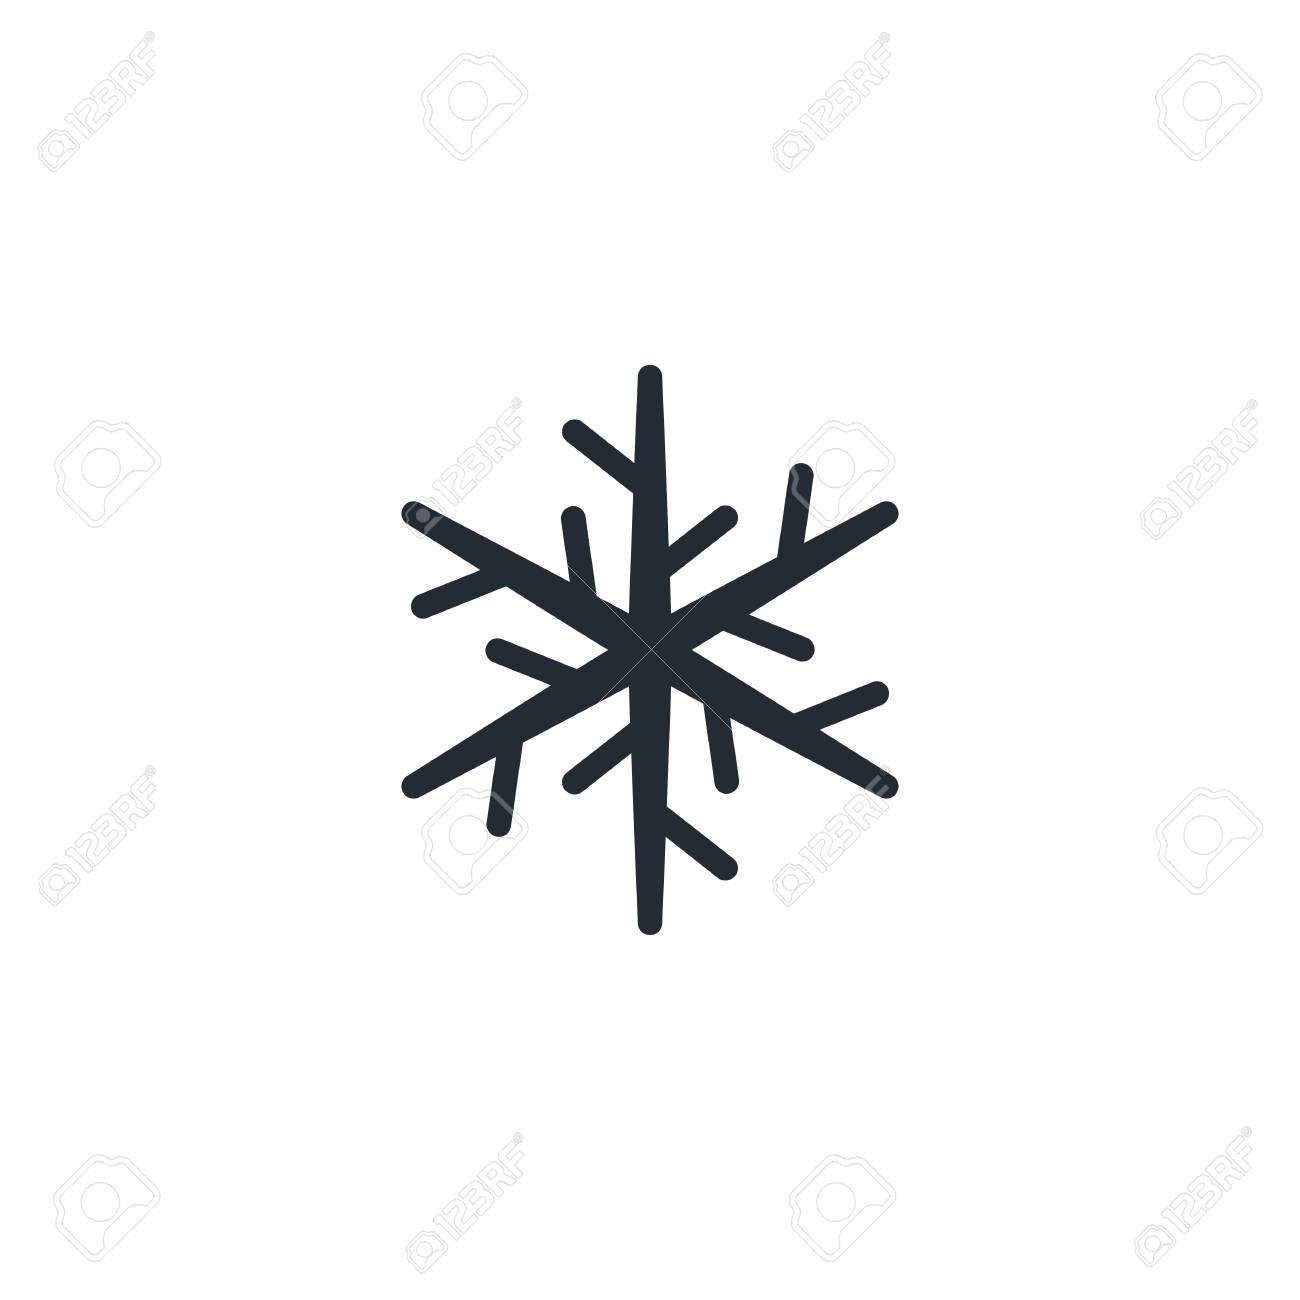 89326341 Six Pointed Star 6 Point Snowflake Flat Icon Snow Pictogram Winter Symbol Vector Illustration I